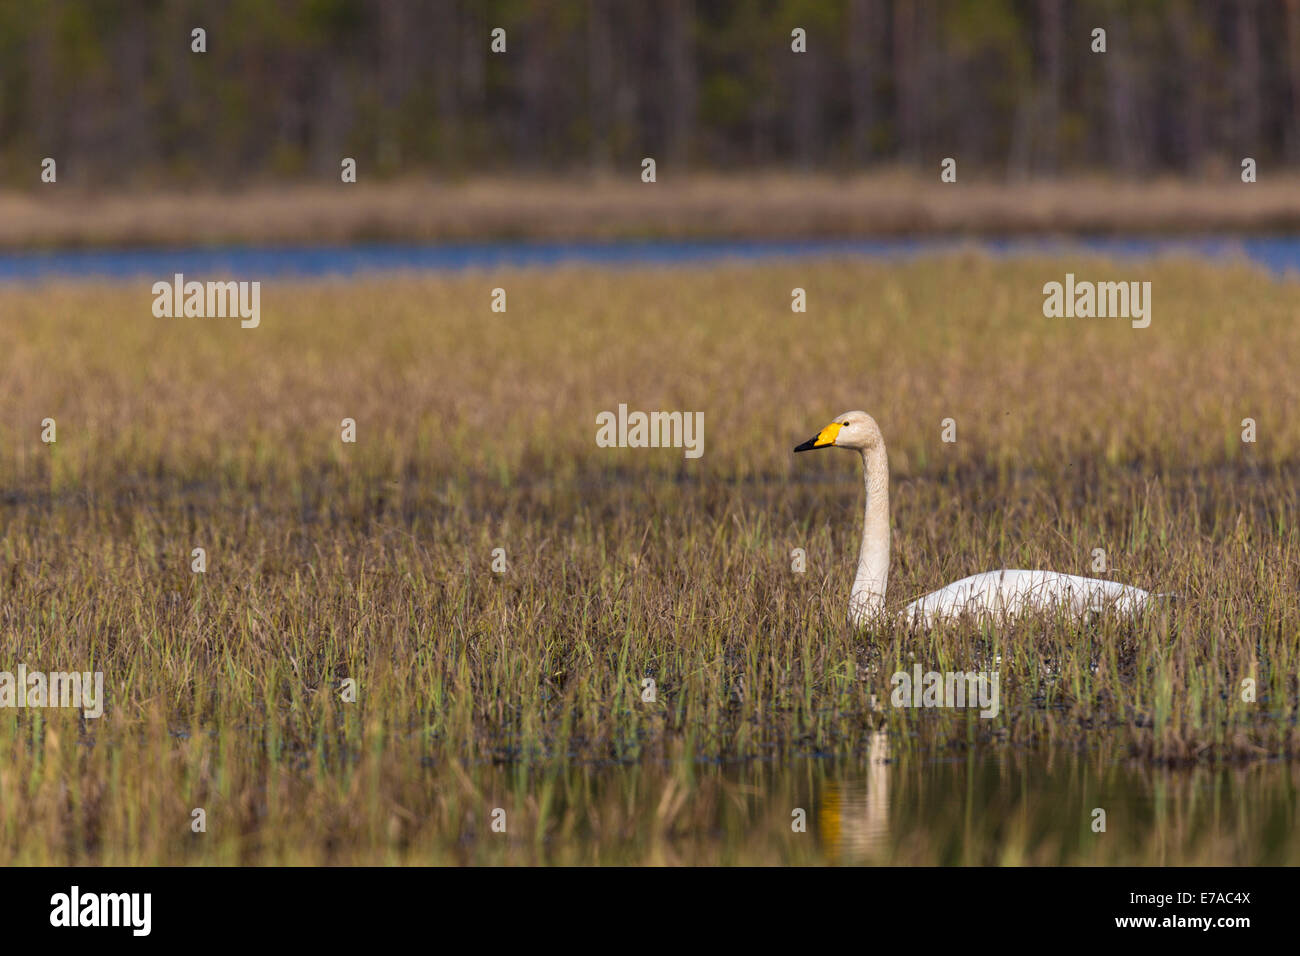 Whooper swan, Cygnus cygnus, lying resting in grass in a swamp - Stock Image